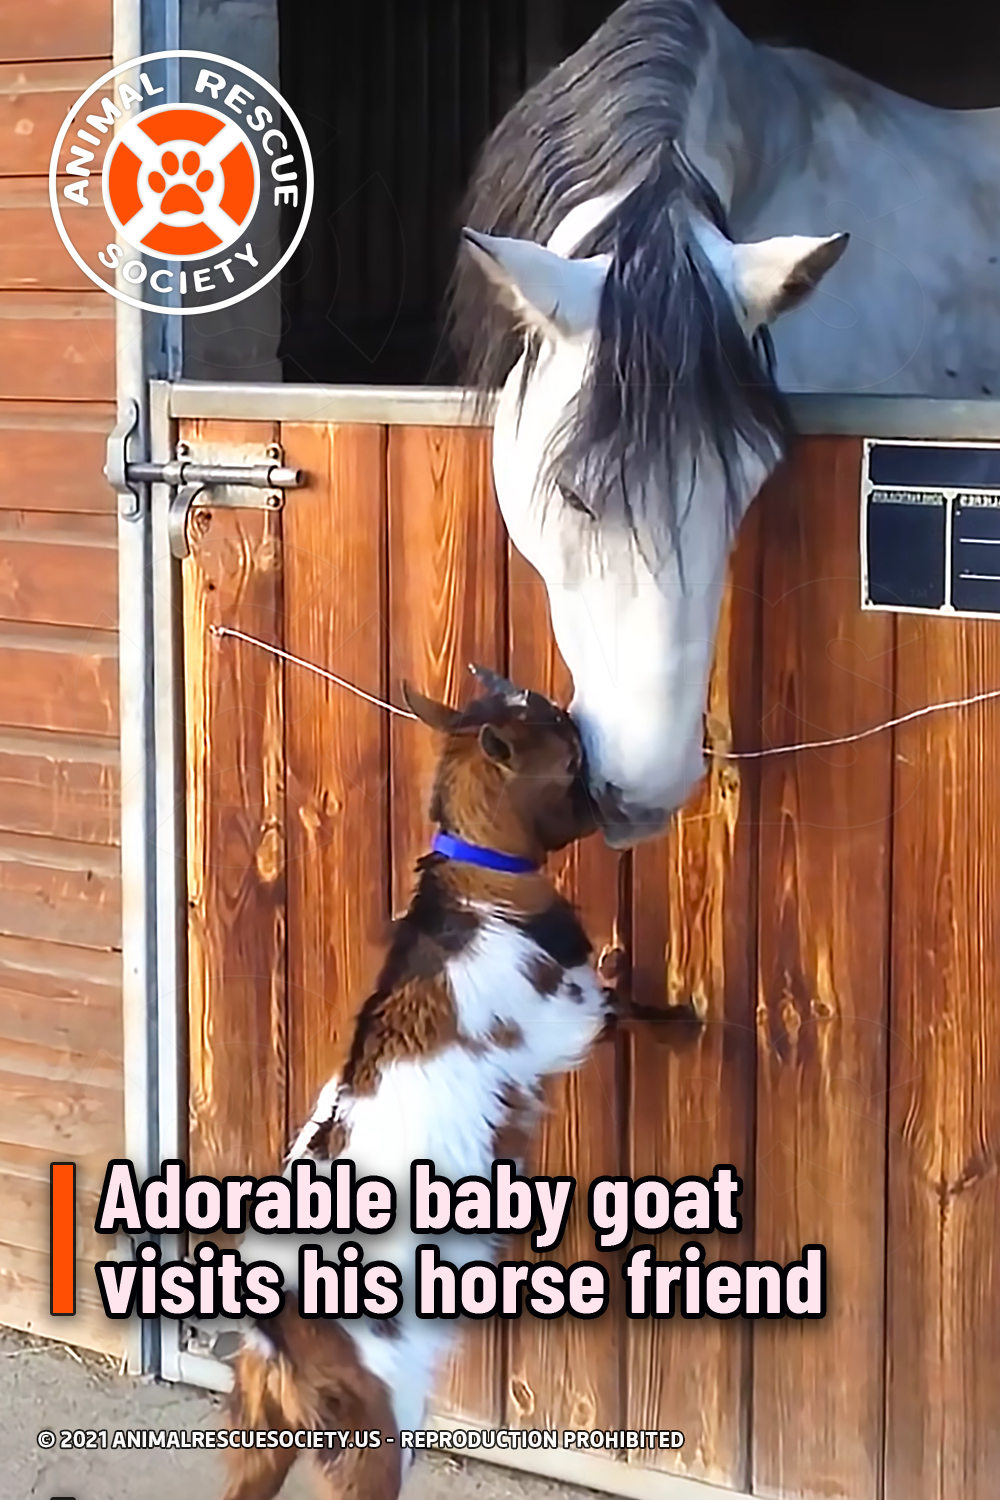 Adorable baby goat visits his horse friend